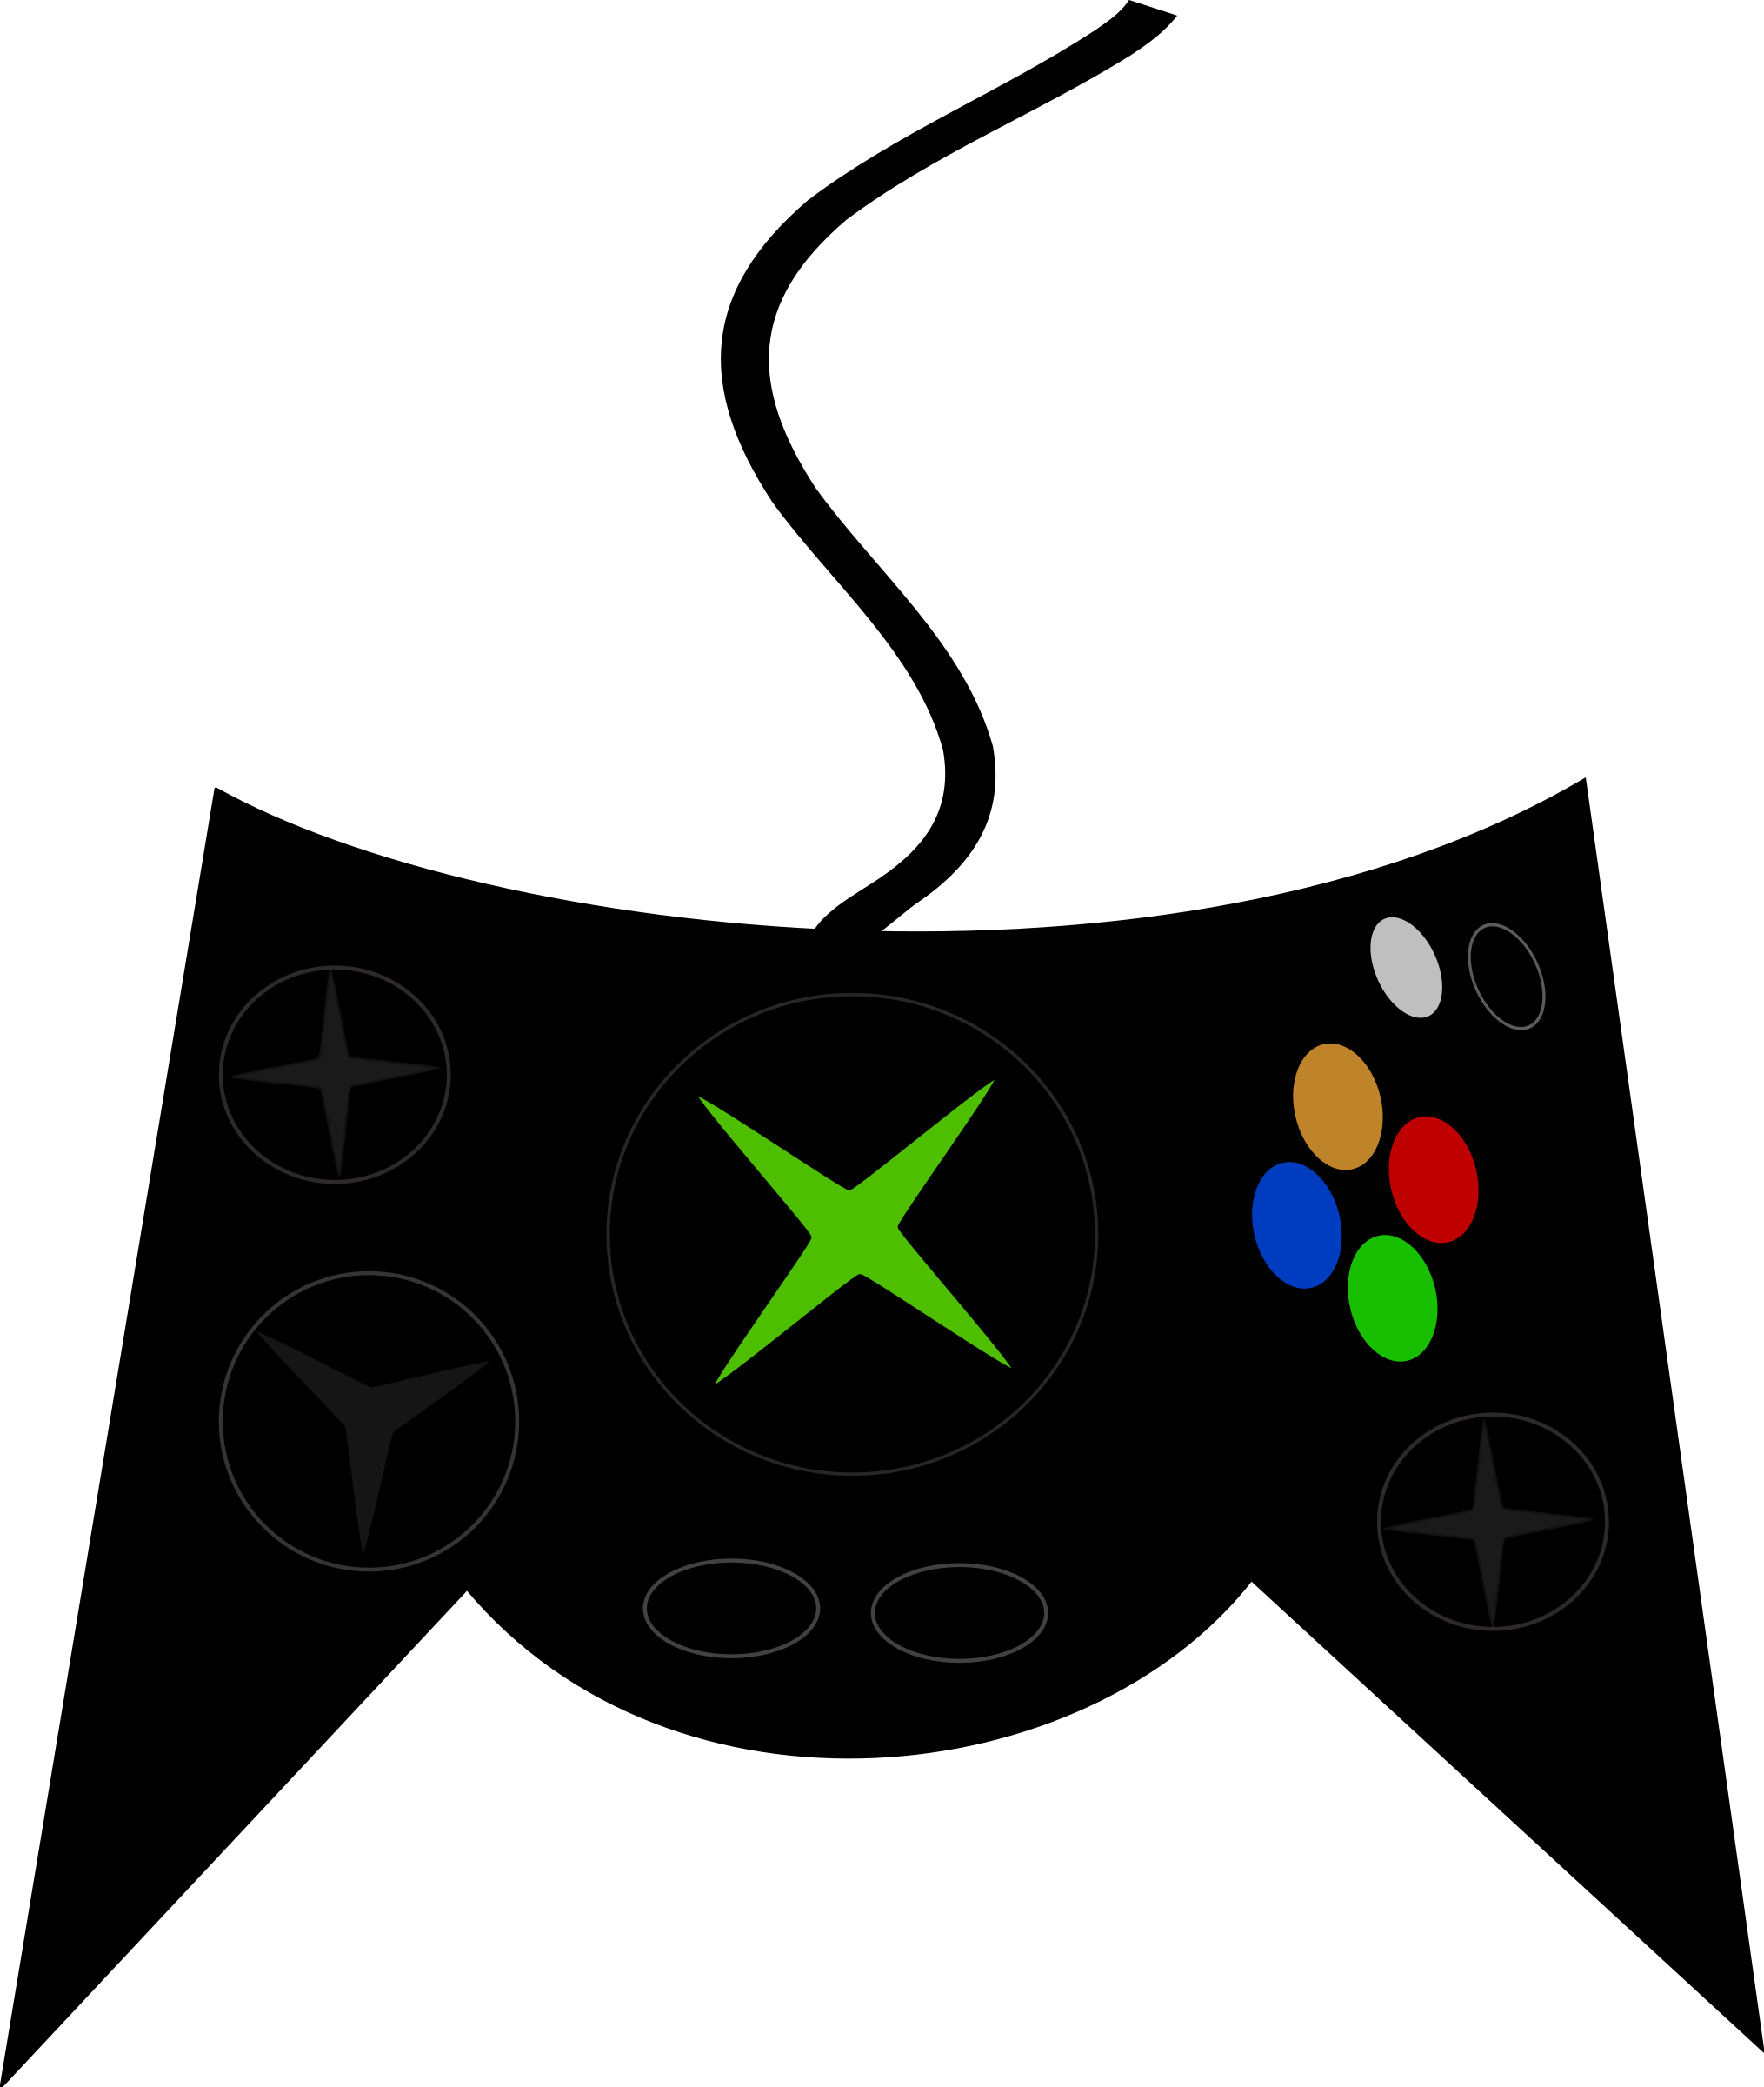 Xbox big image png. Controller clipart controler